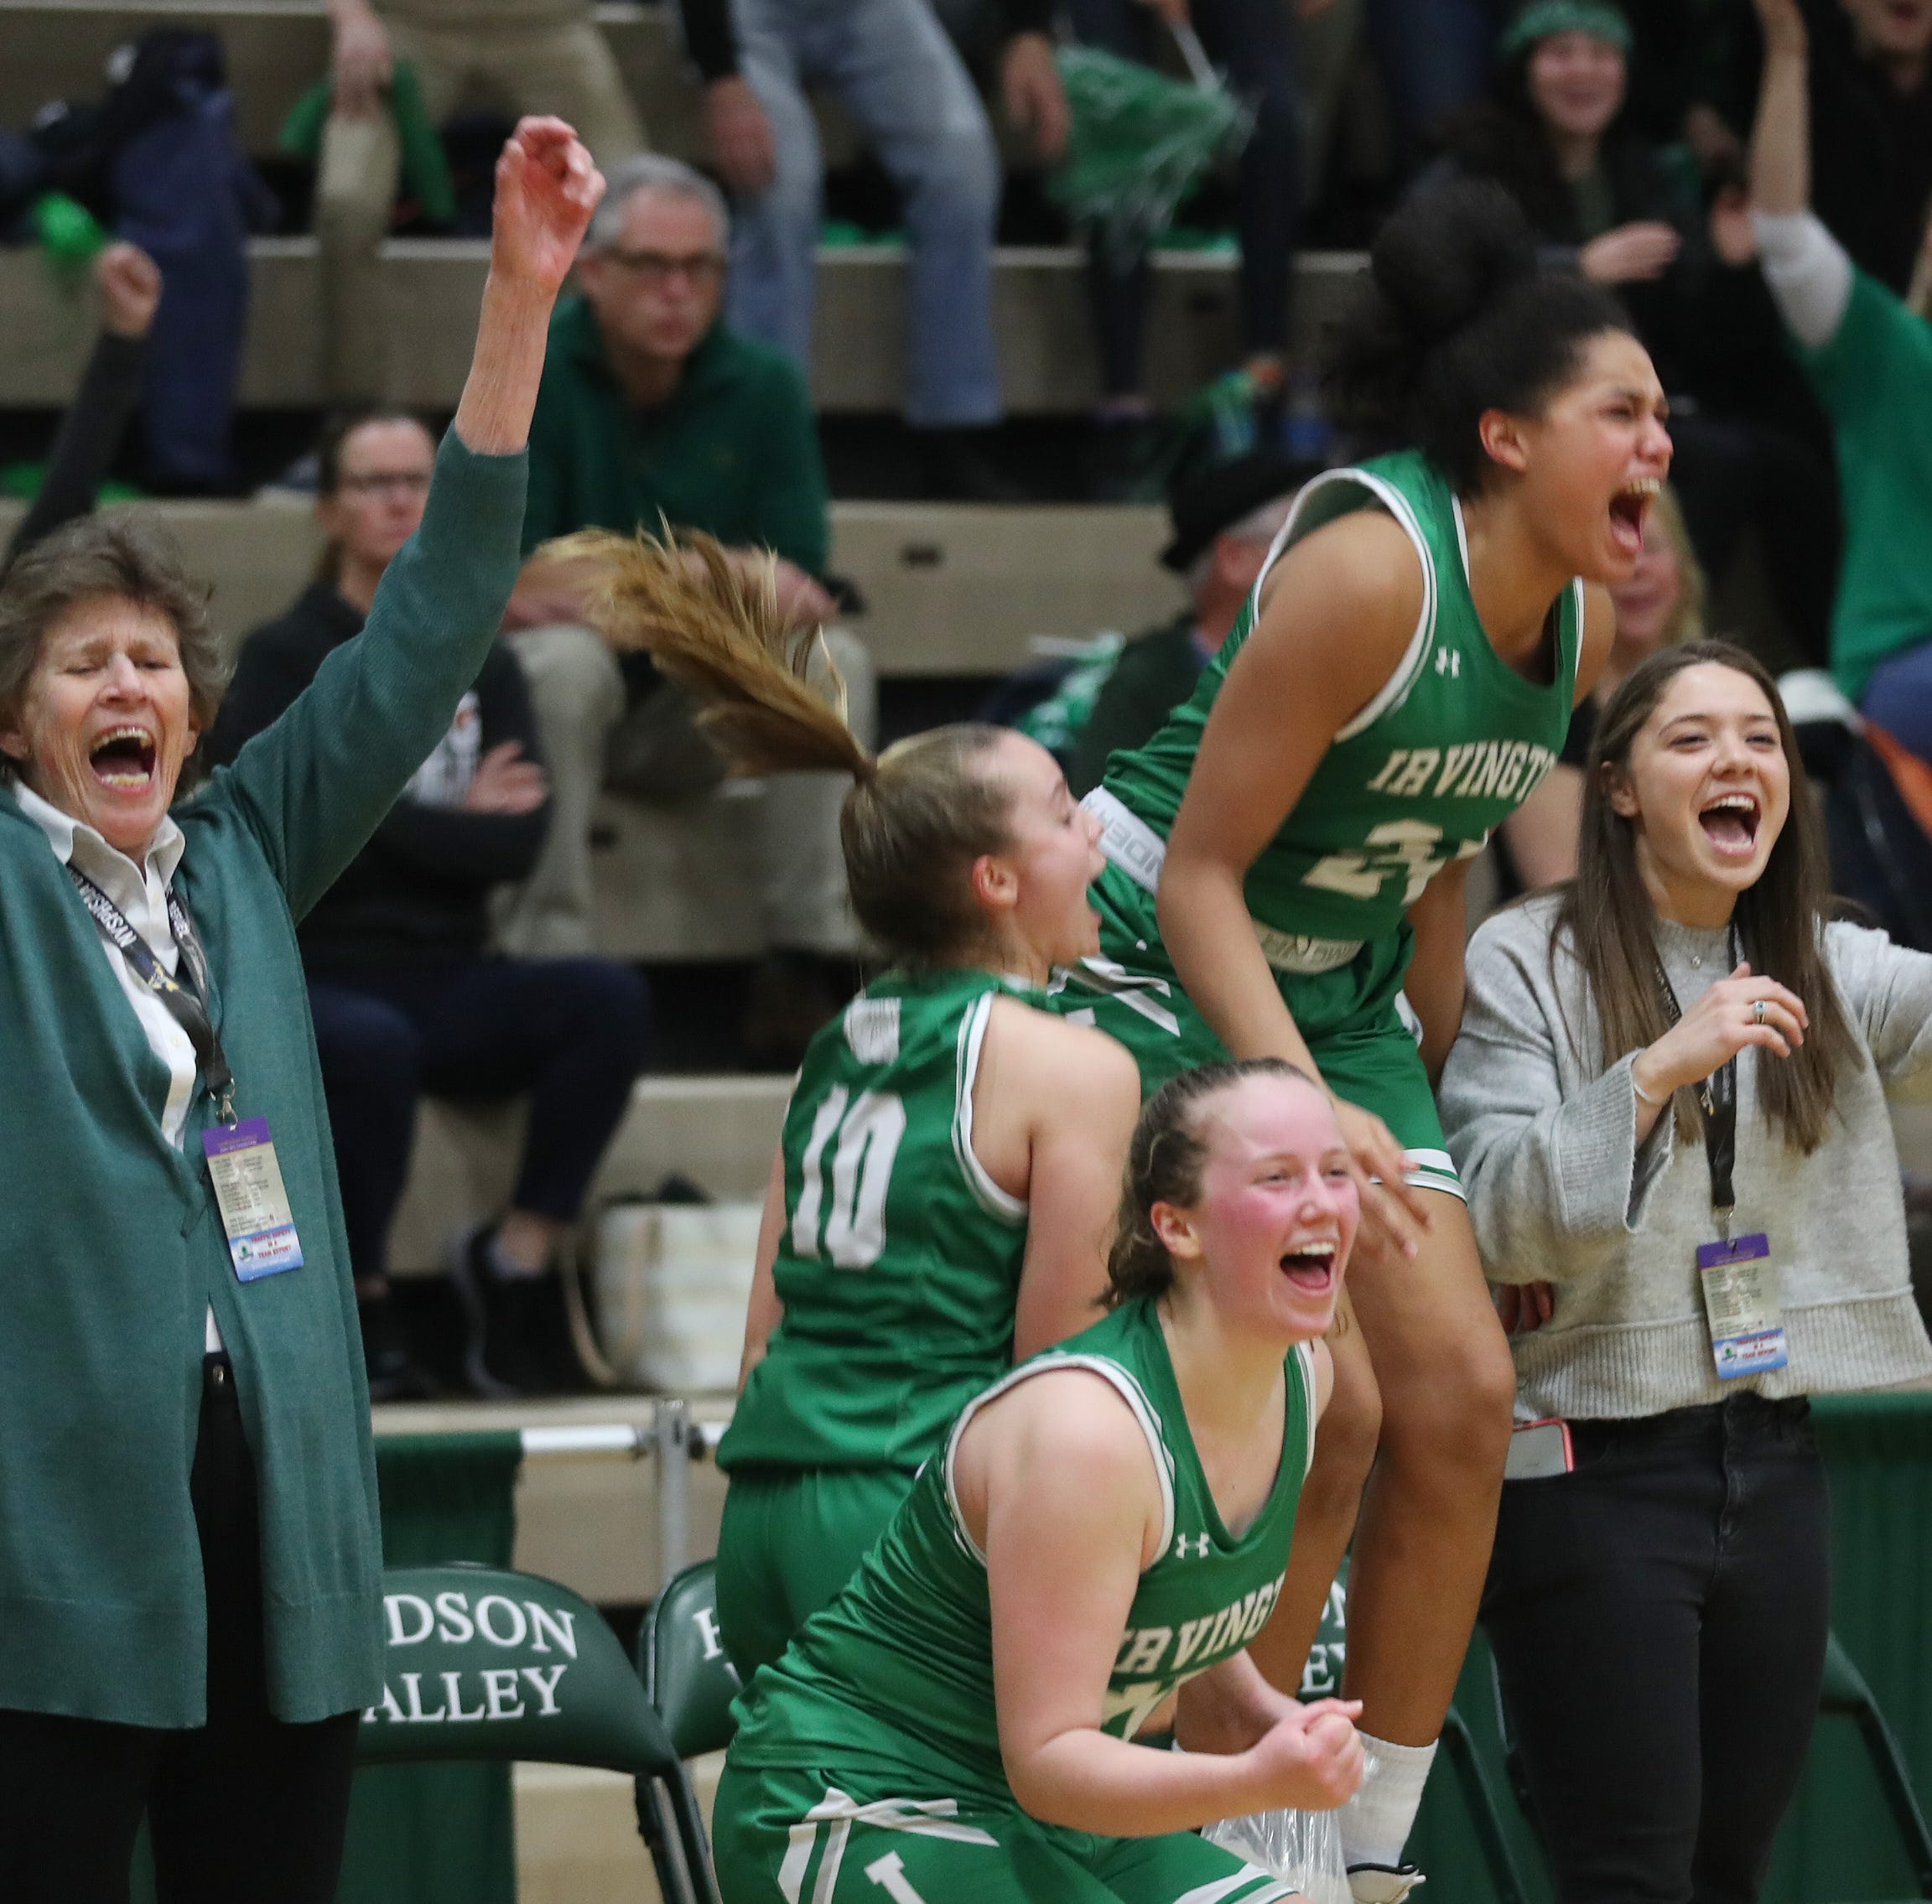 Girls basketball: Irvington defies odds to win Class B state championship